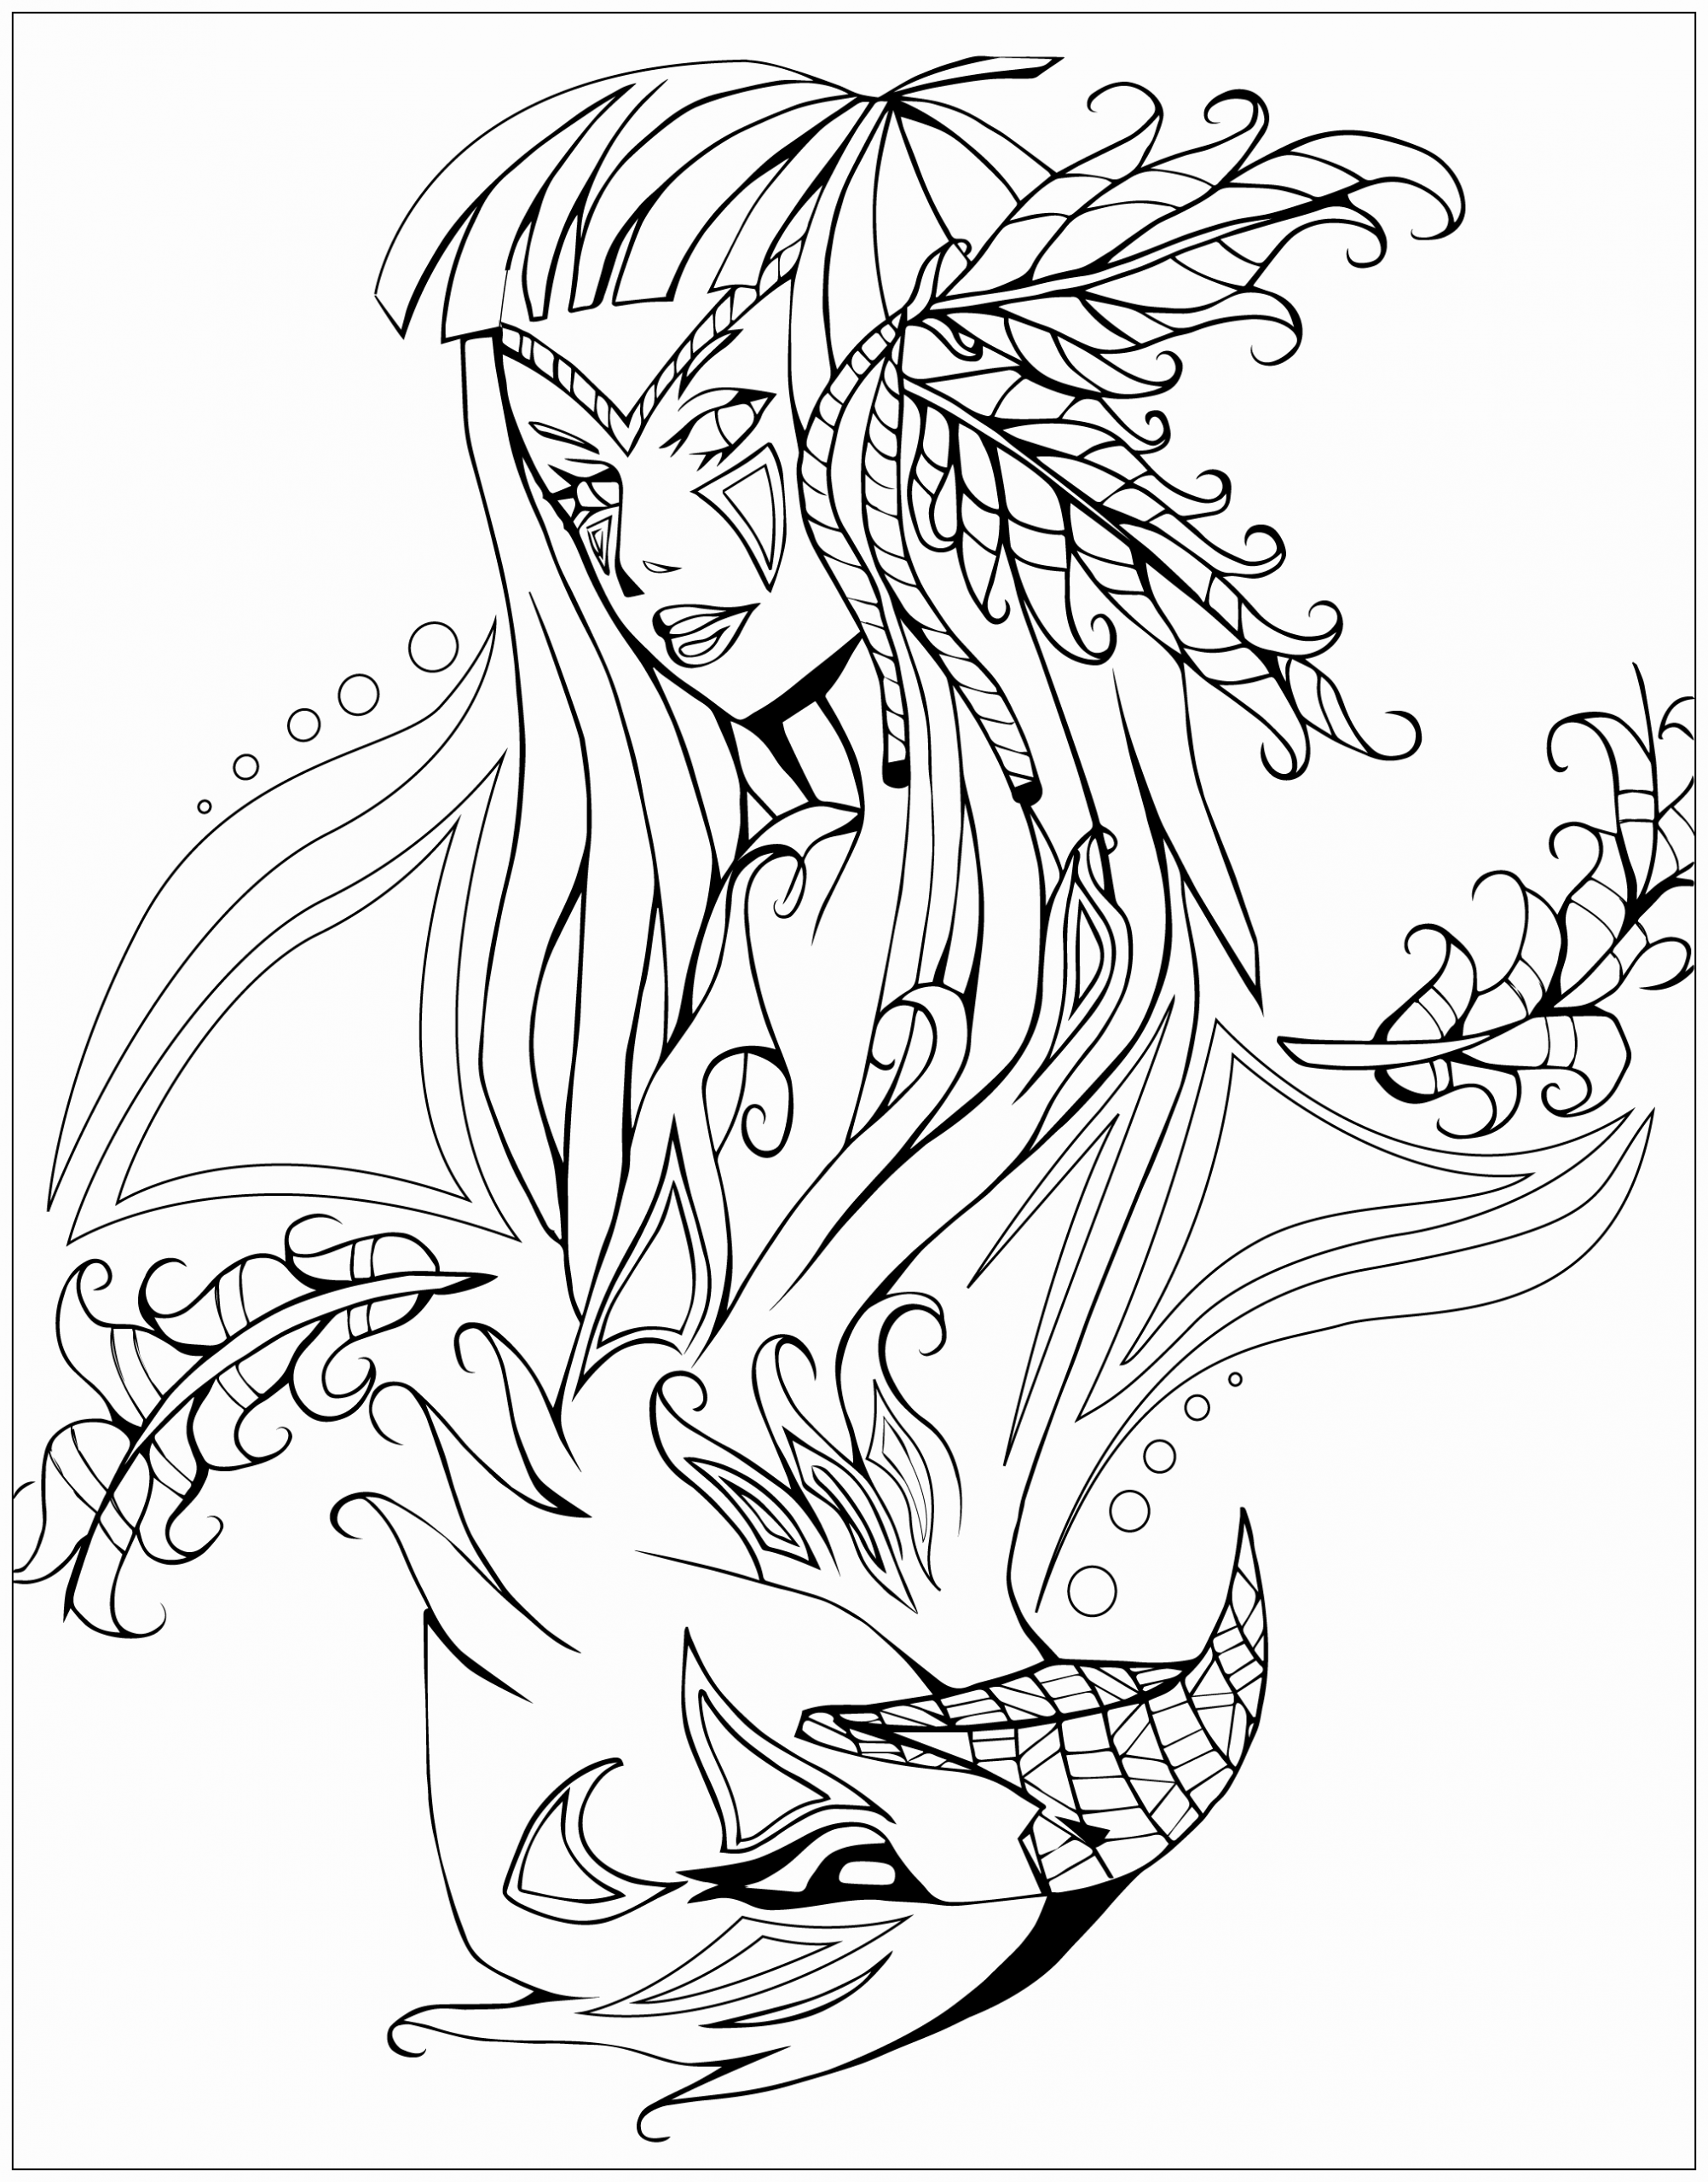 - Pin On My Favorit Coloring Page Ideas